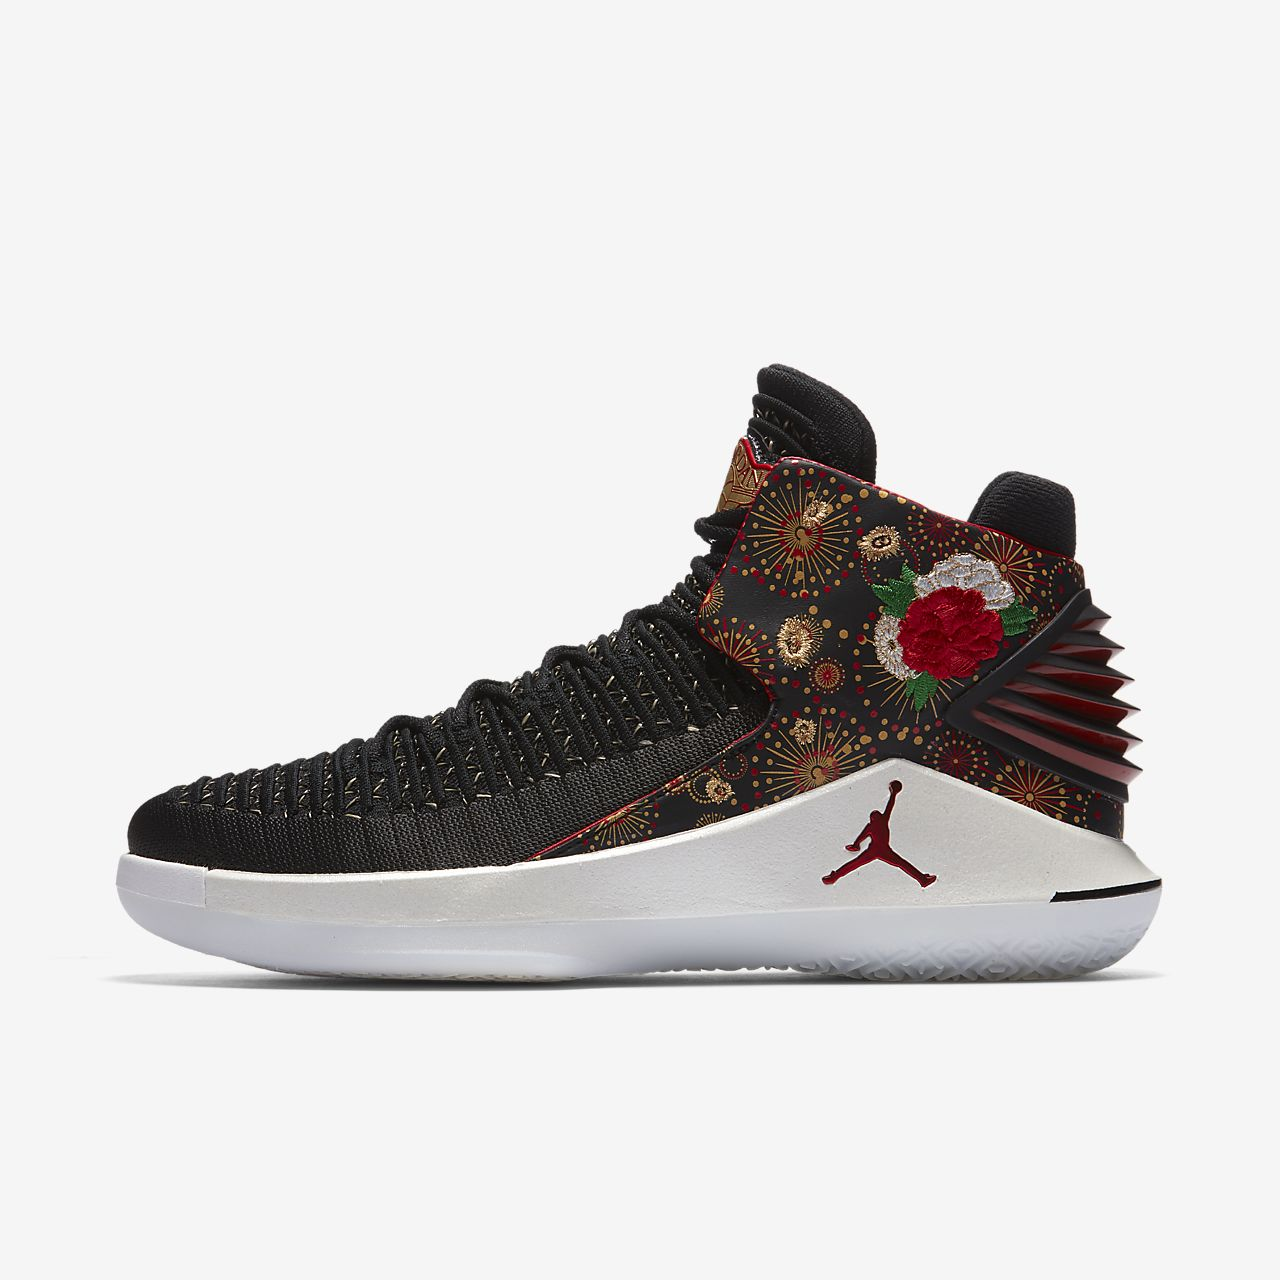 new arrival 2931e 3183d Men s Basketball Shoe. Air Jordan XXXII  Chinese New Year